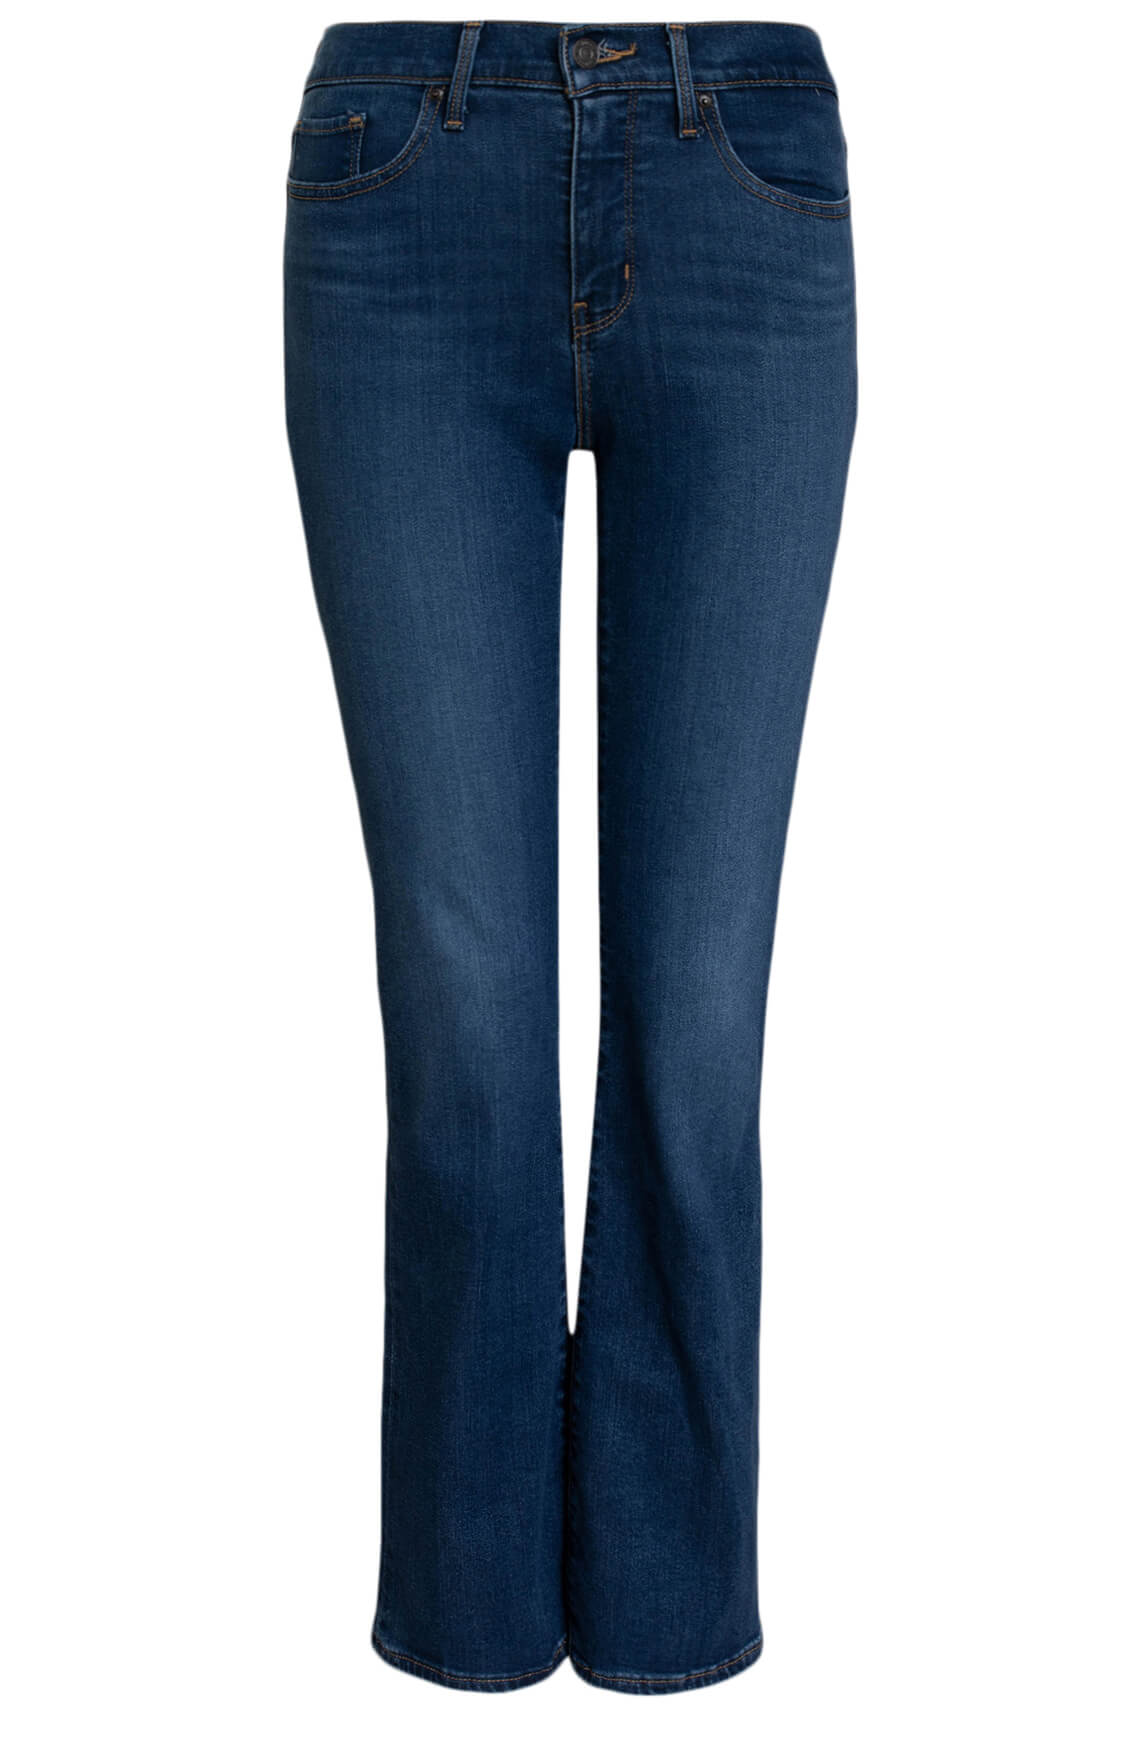 Levi s Dames 315 shaping bootcut jeans Blauw